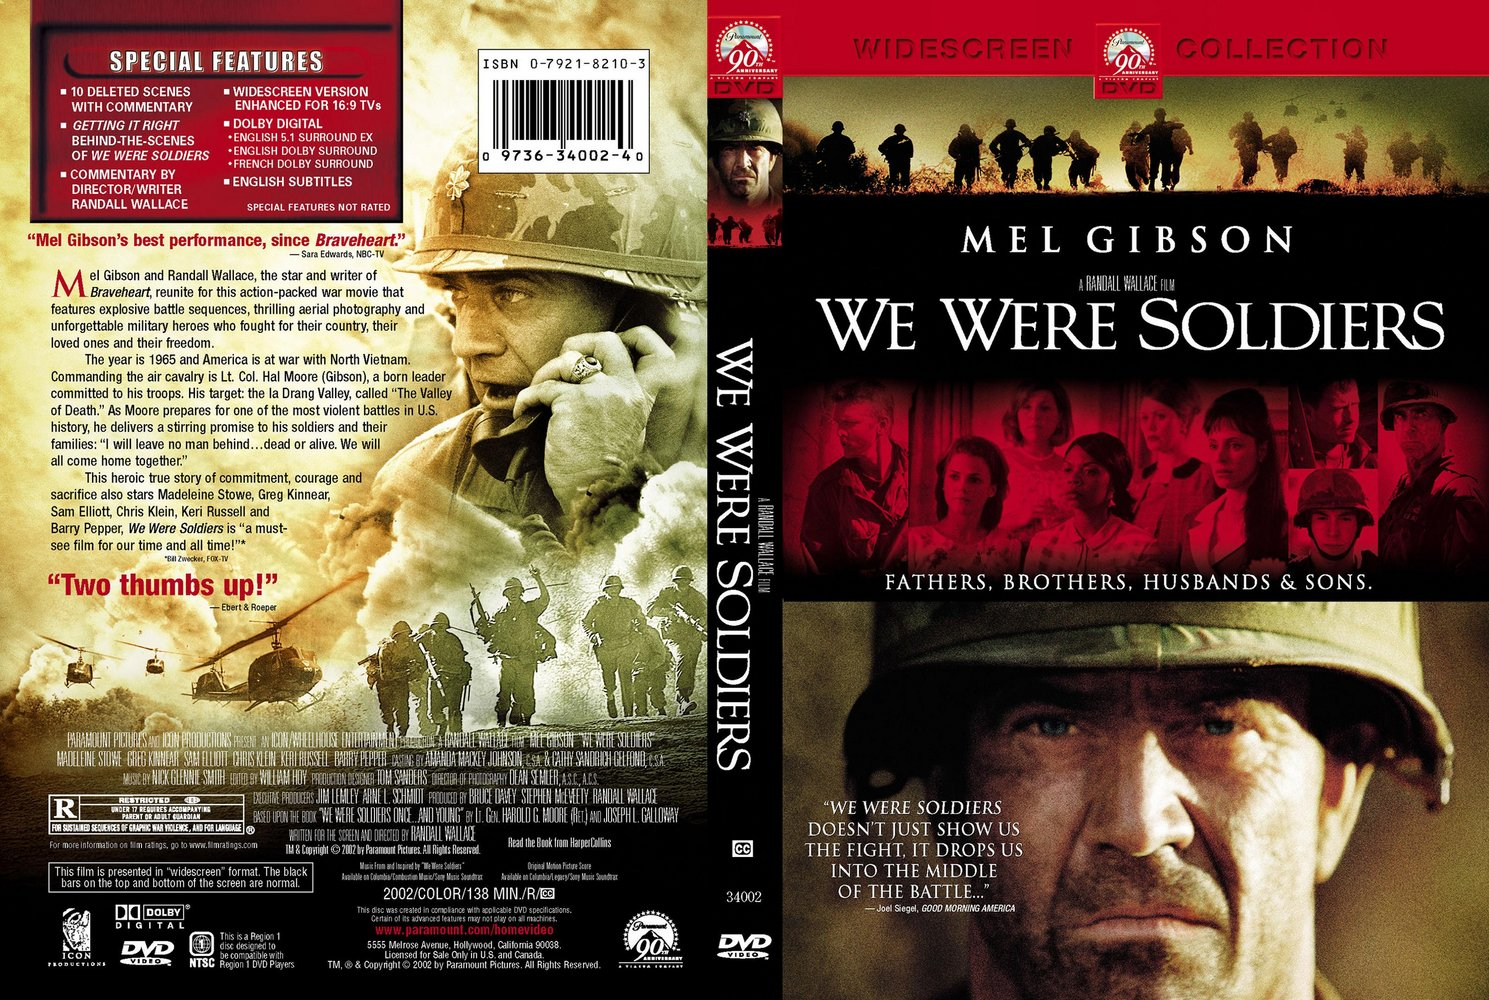 We Were Soldiers (US, Paramount)